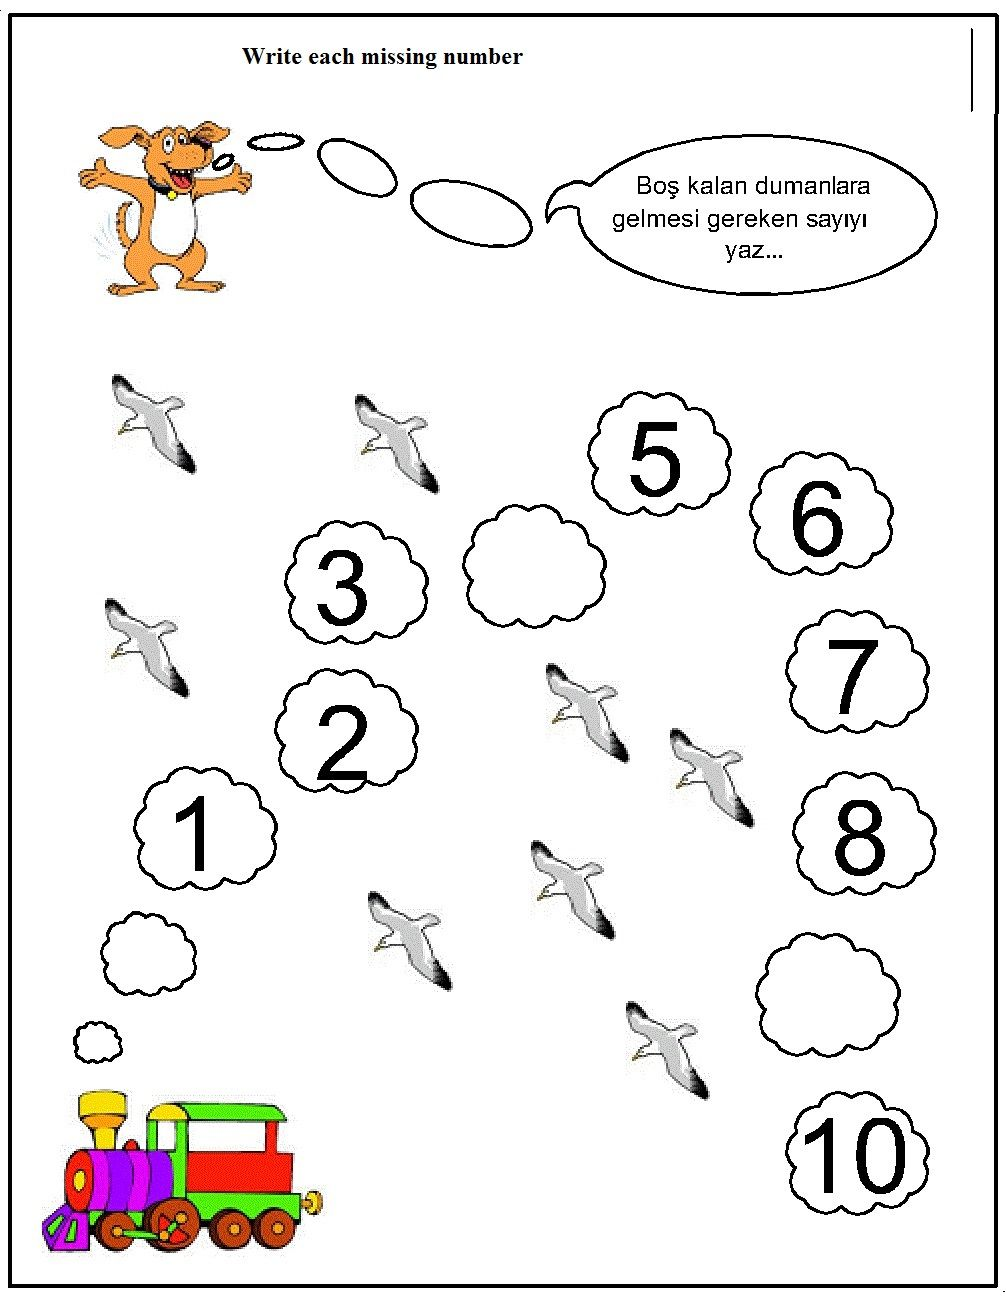 Uncategorized Missing Number Worksheet missing number worksheet for kids 14 pinterest 14